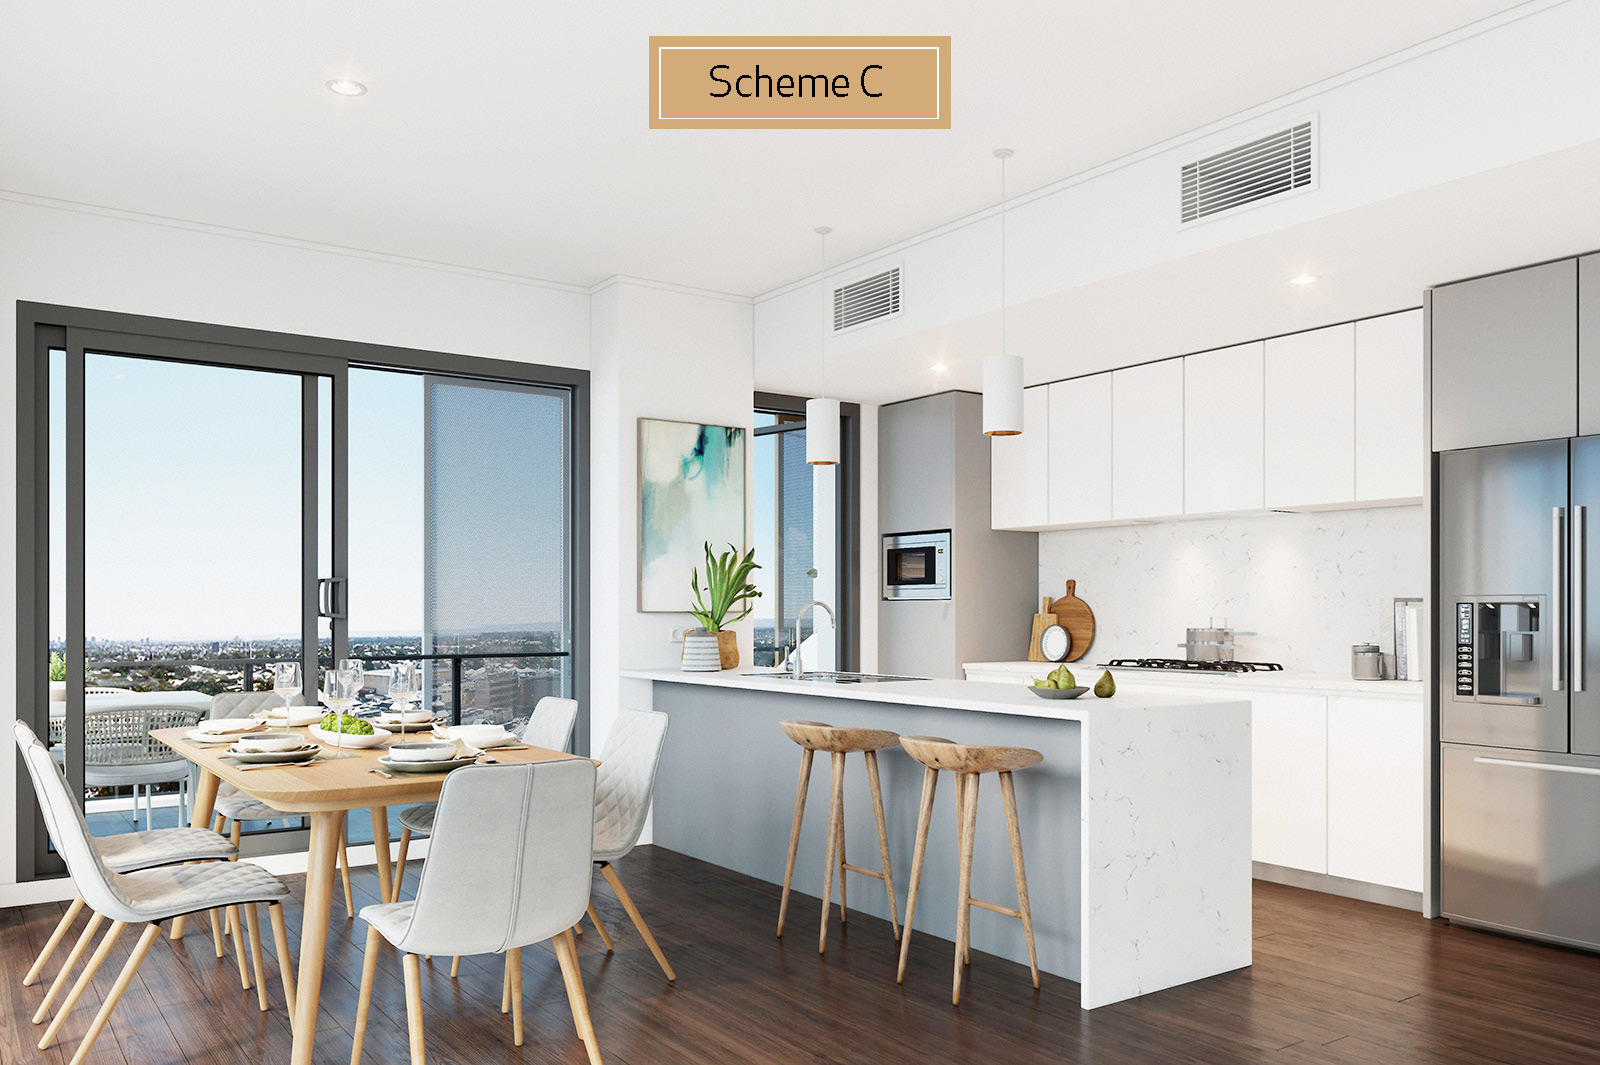 Apartment 113 - Kitchen Scheme C